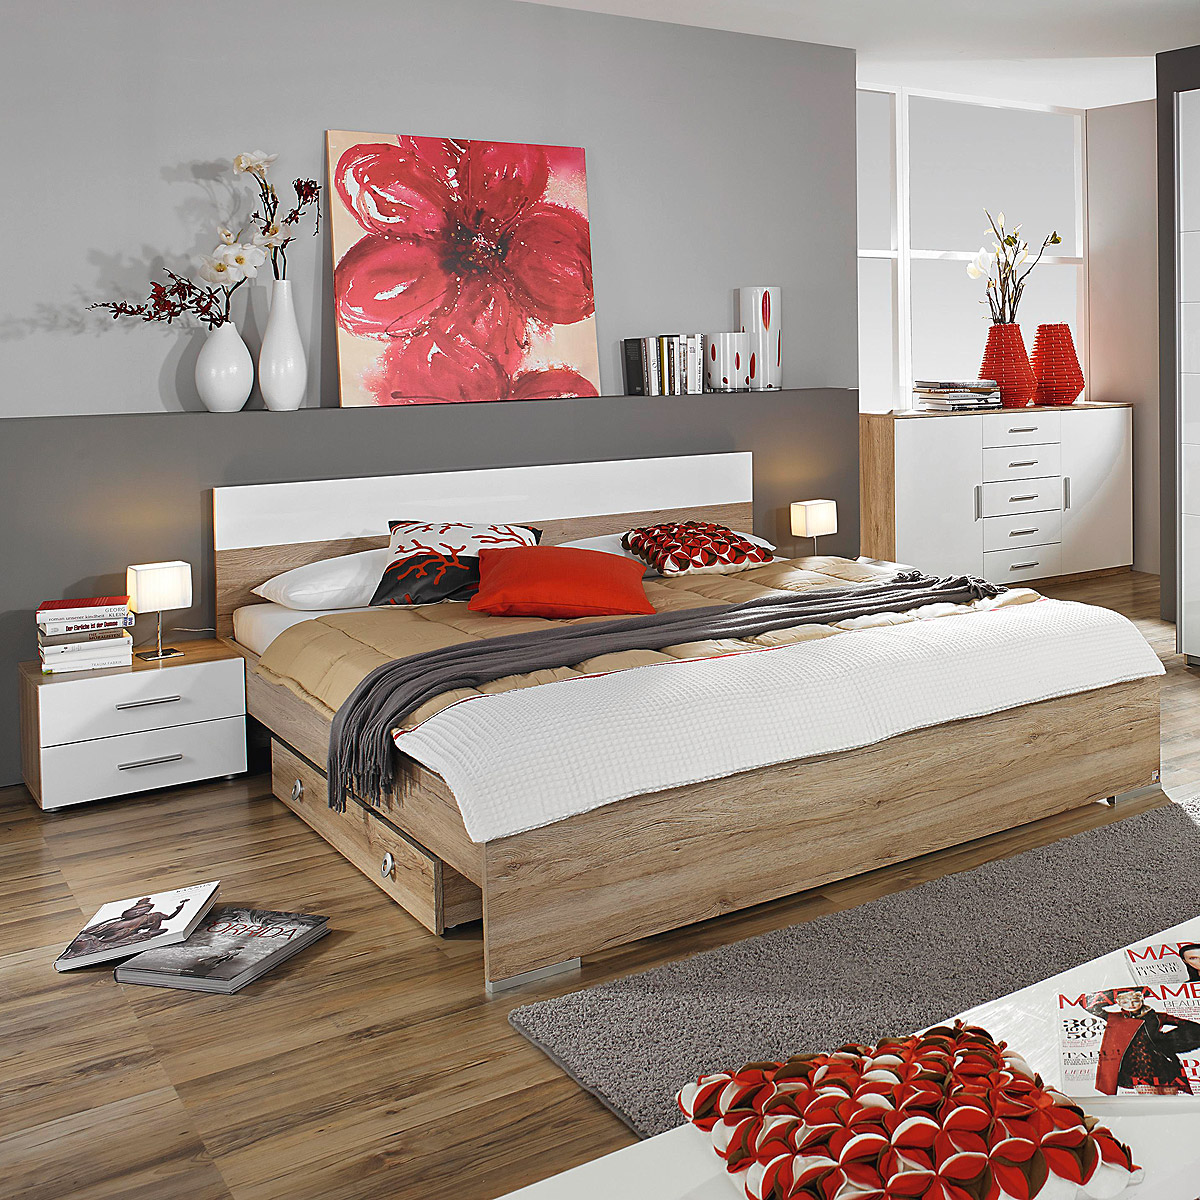 bettanlage lorca bett nako eiche sanremo hell wei hochglanz 180x200 cm. Black Bedroom Furniture Sets. Home Design Ideas